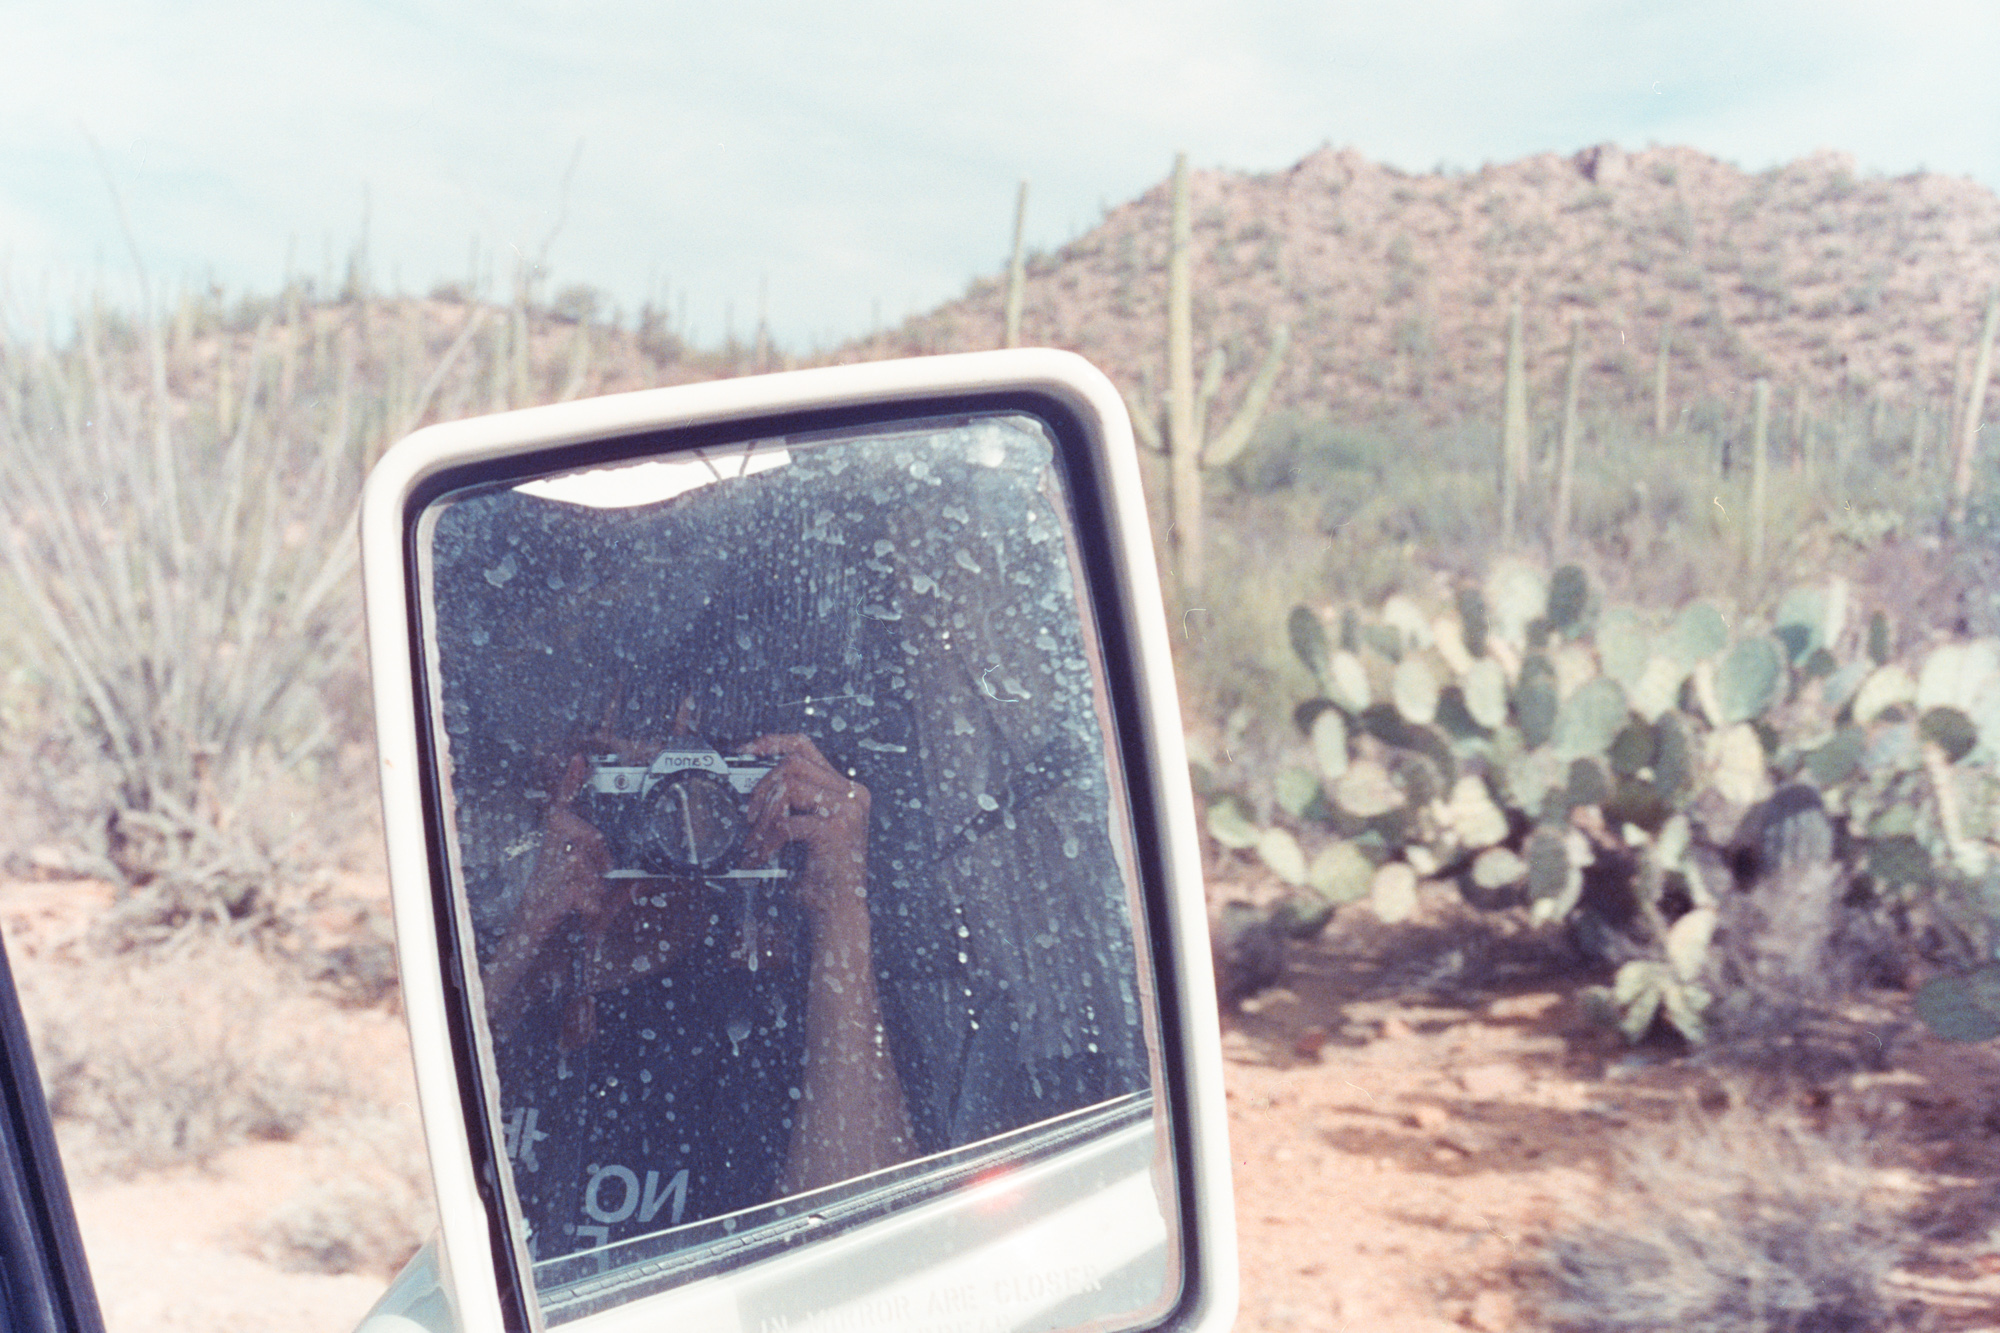 Shooting my Canon AE-1 in Saguaro National Park.